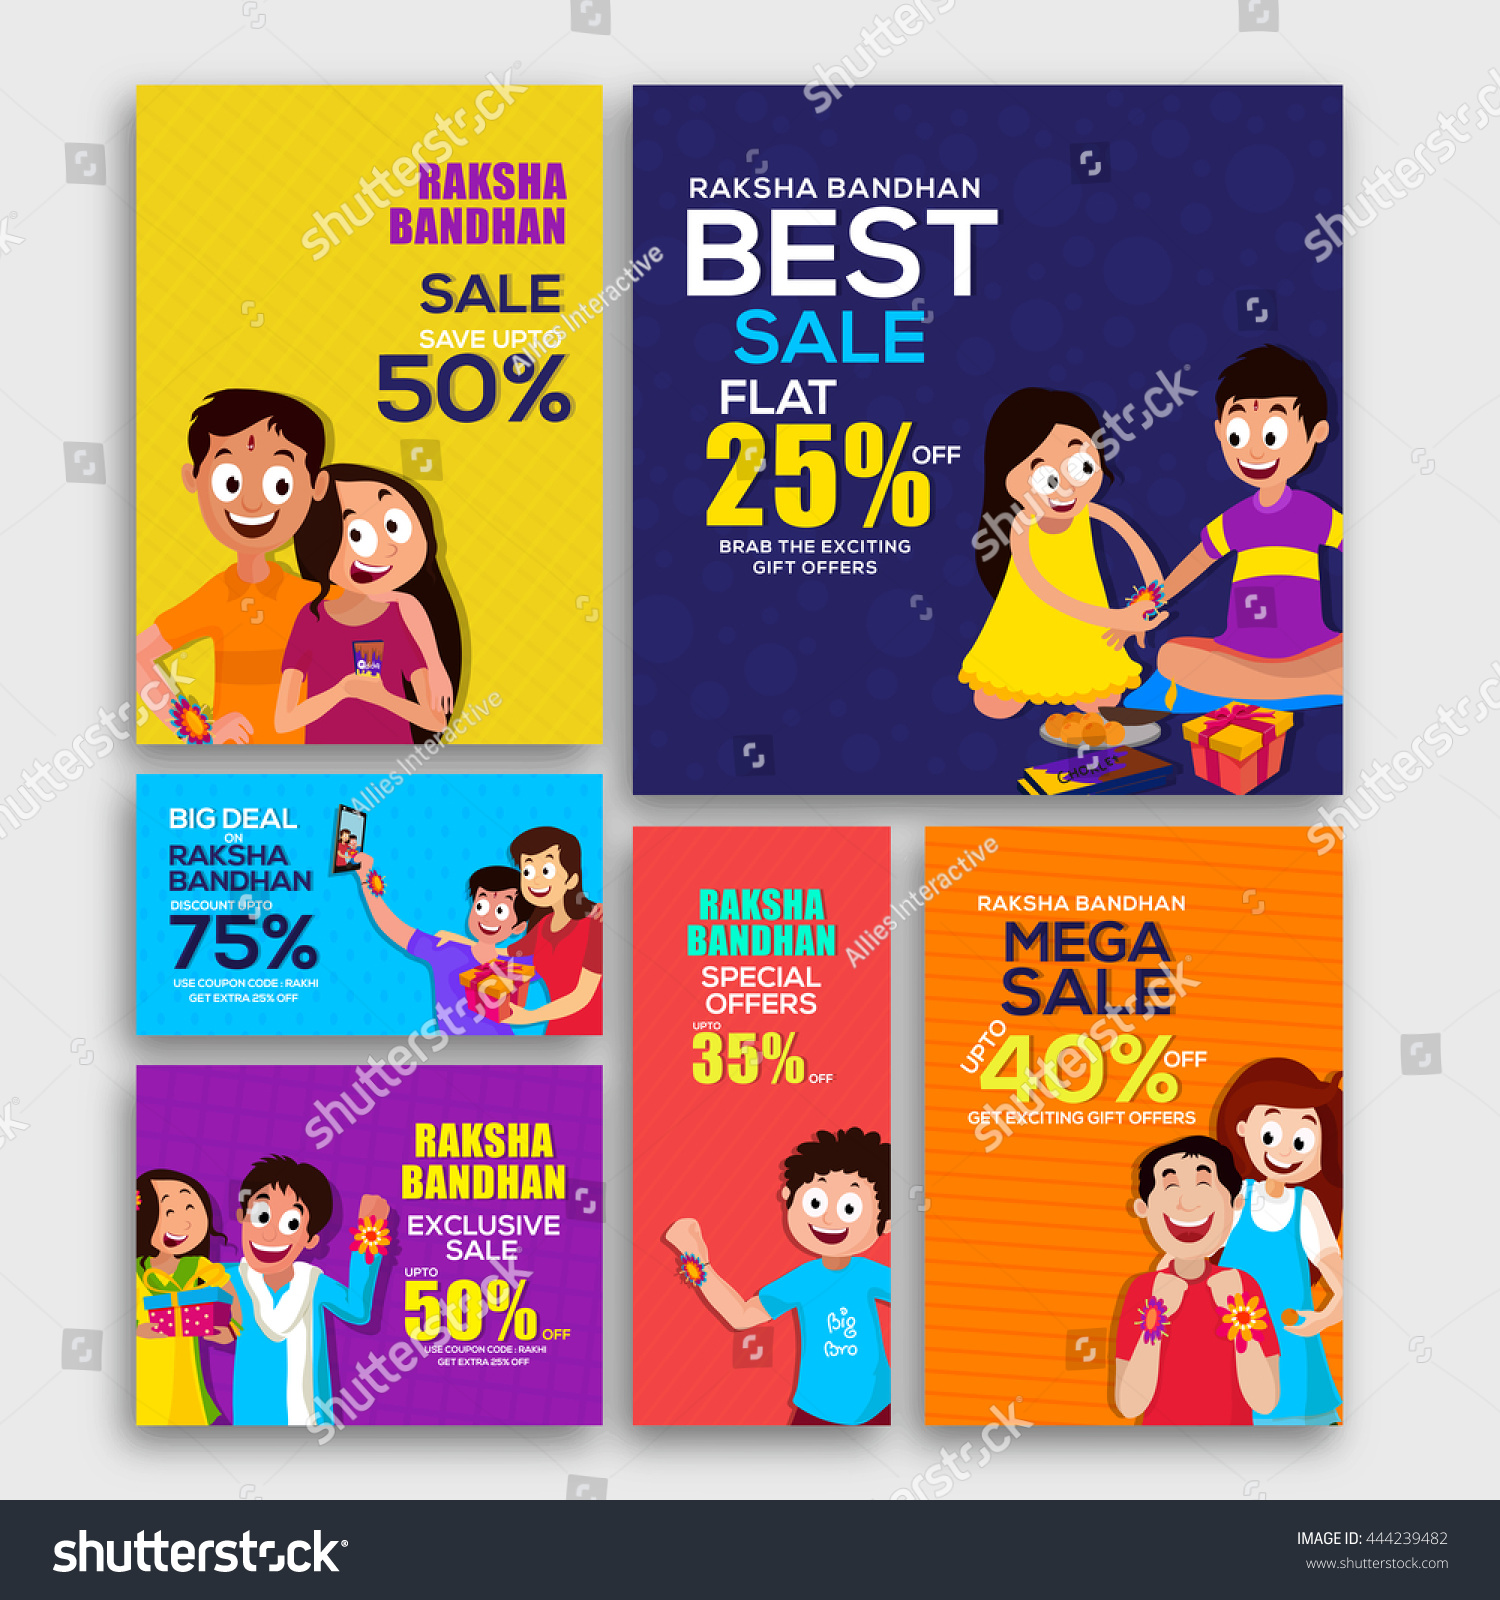 Raksha Bandhan Sale with Discount Offer Creative Social Media Post Header or Banner set with cute characters Concept for Indian Festival of Brothers and Sisters celebration